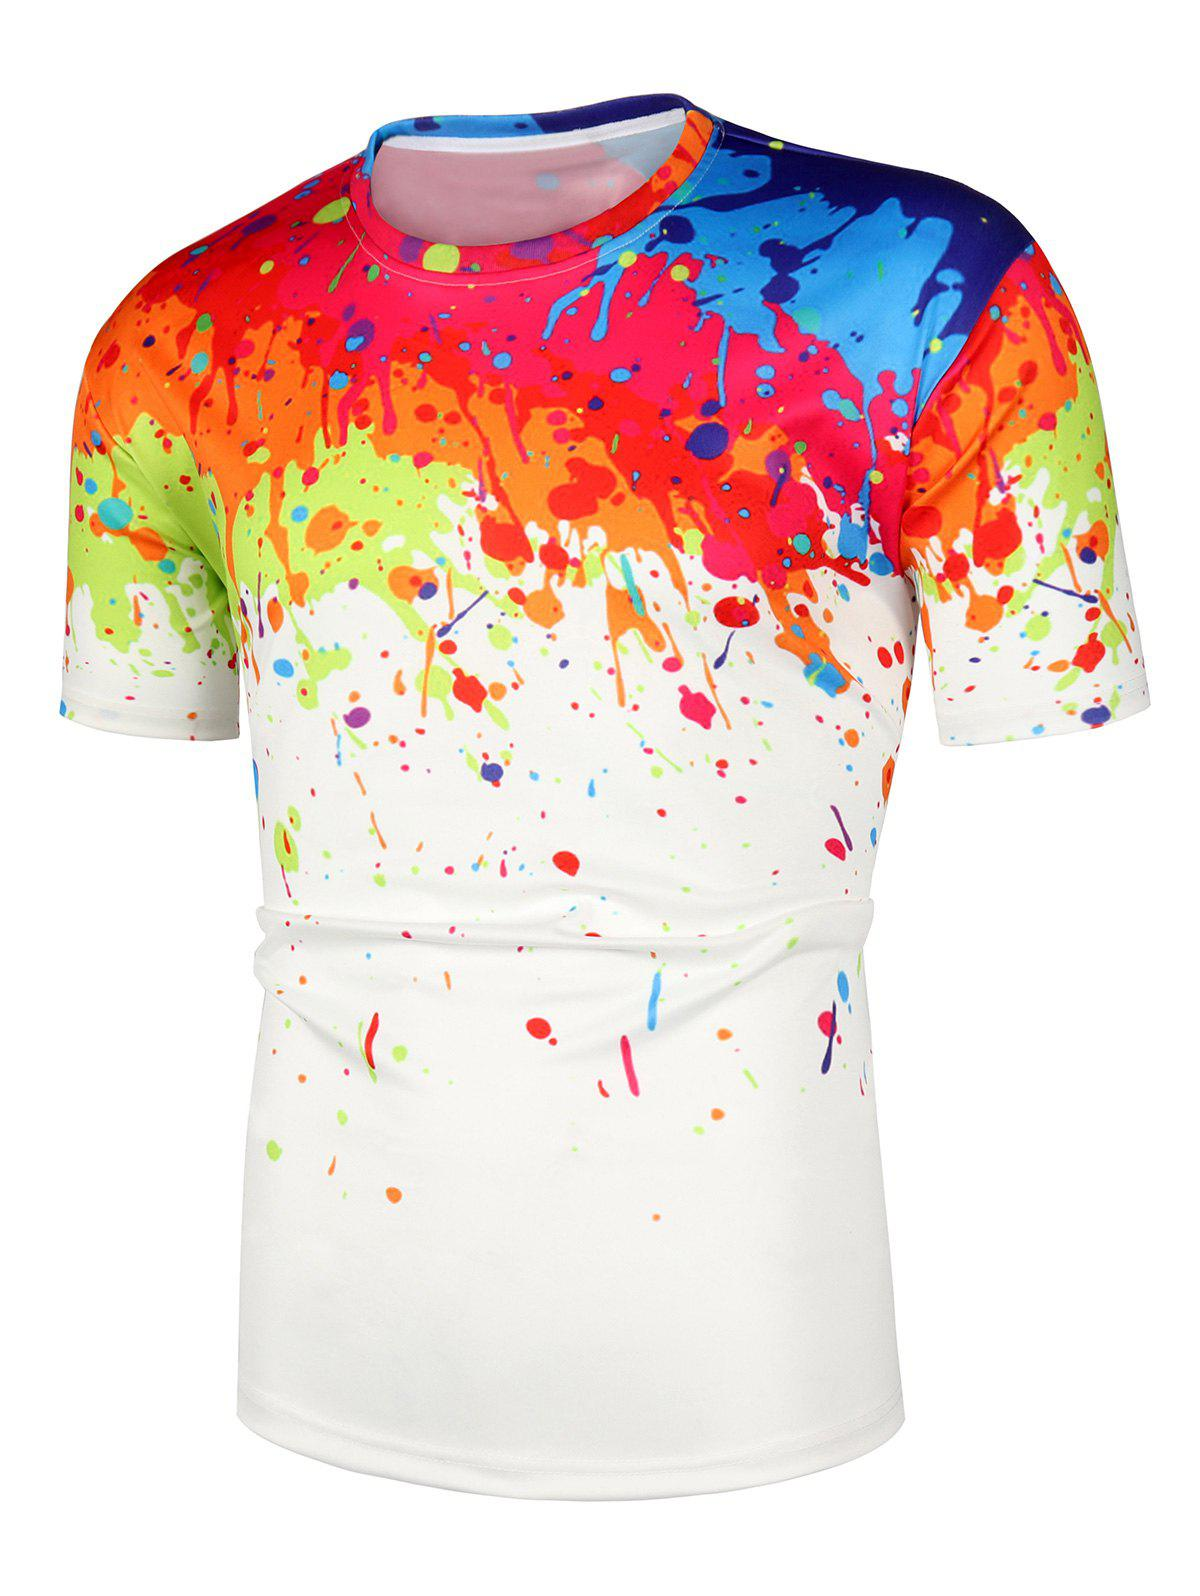 Store Painting Printed Short Sleeves Casual T-shirt